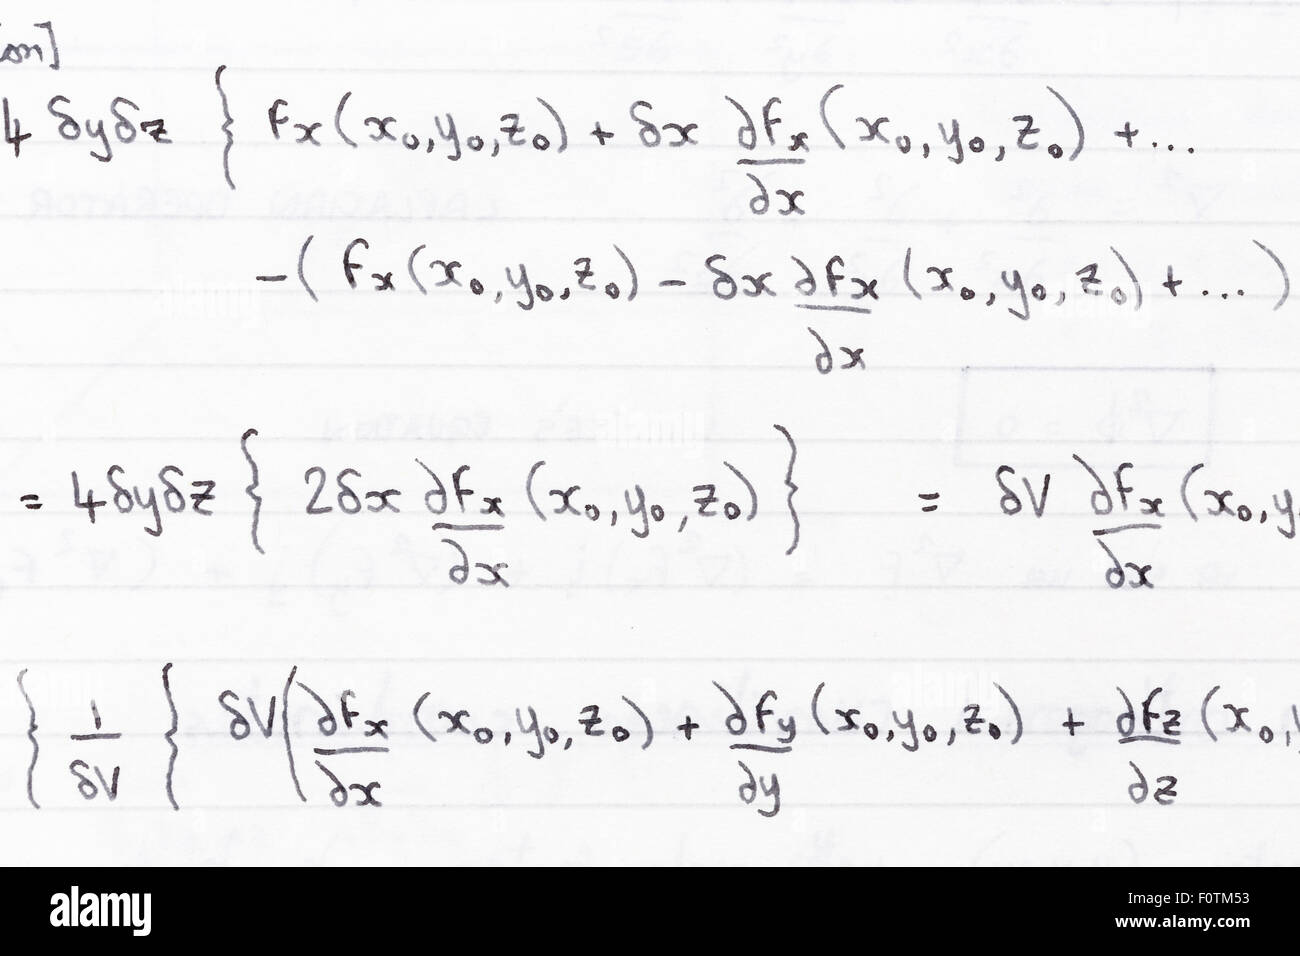 Hand written study notes for math with equations for divergence of vector fields - Stock Image